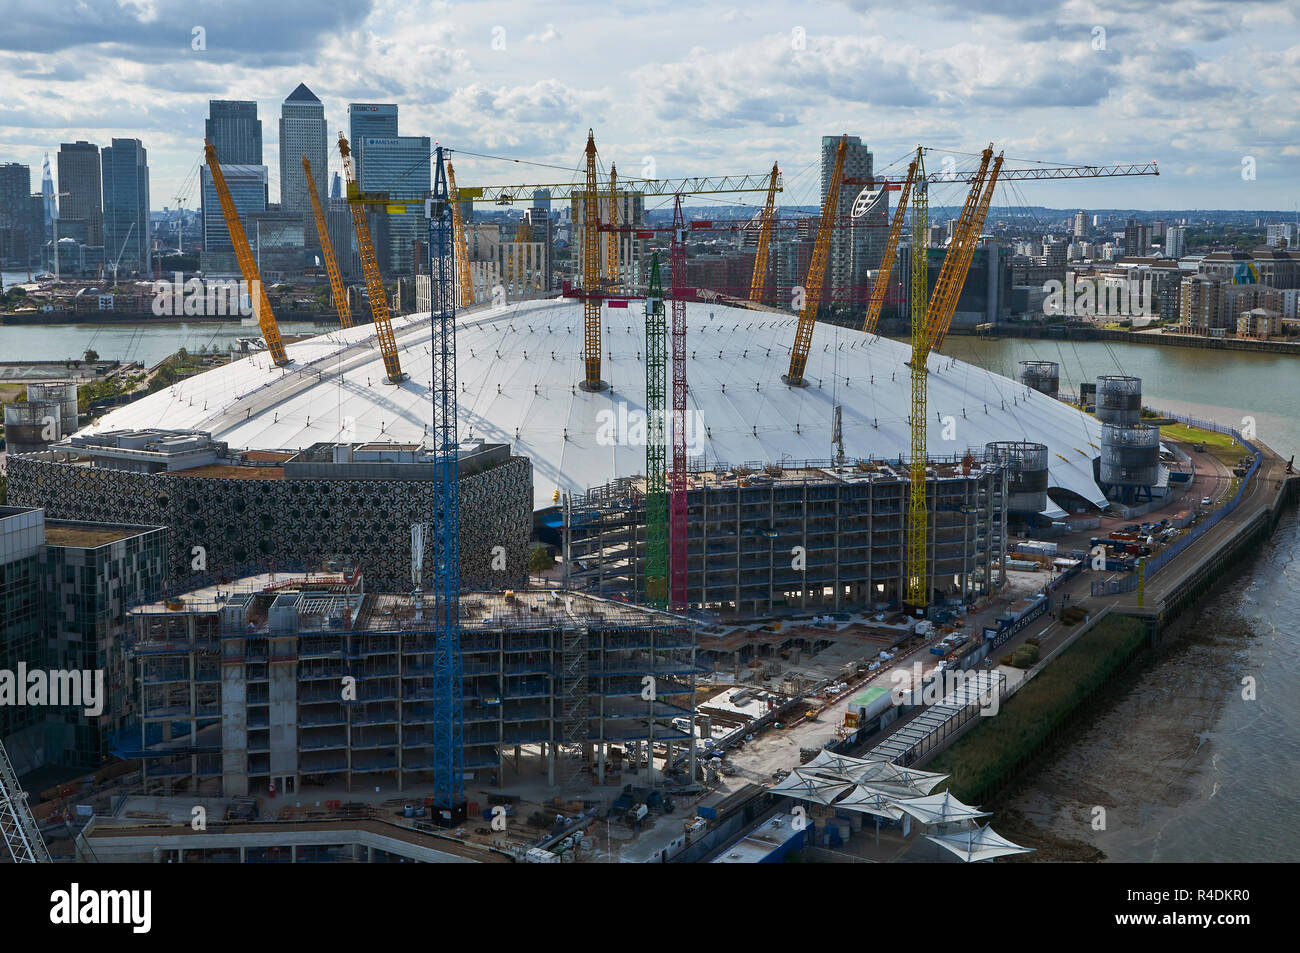 Greenwich Peninsula, South East London UK, from above, with the O2 Arena and new buildings under construction - Stock Image